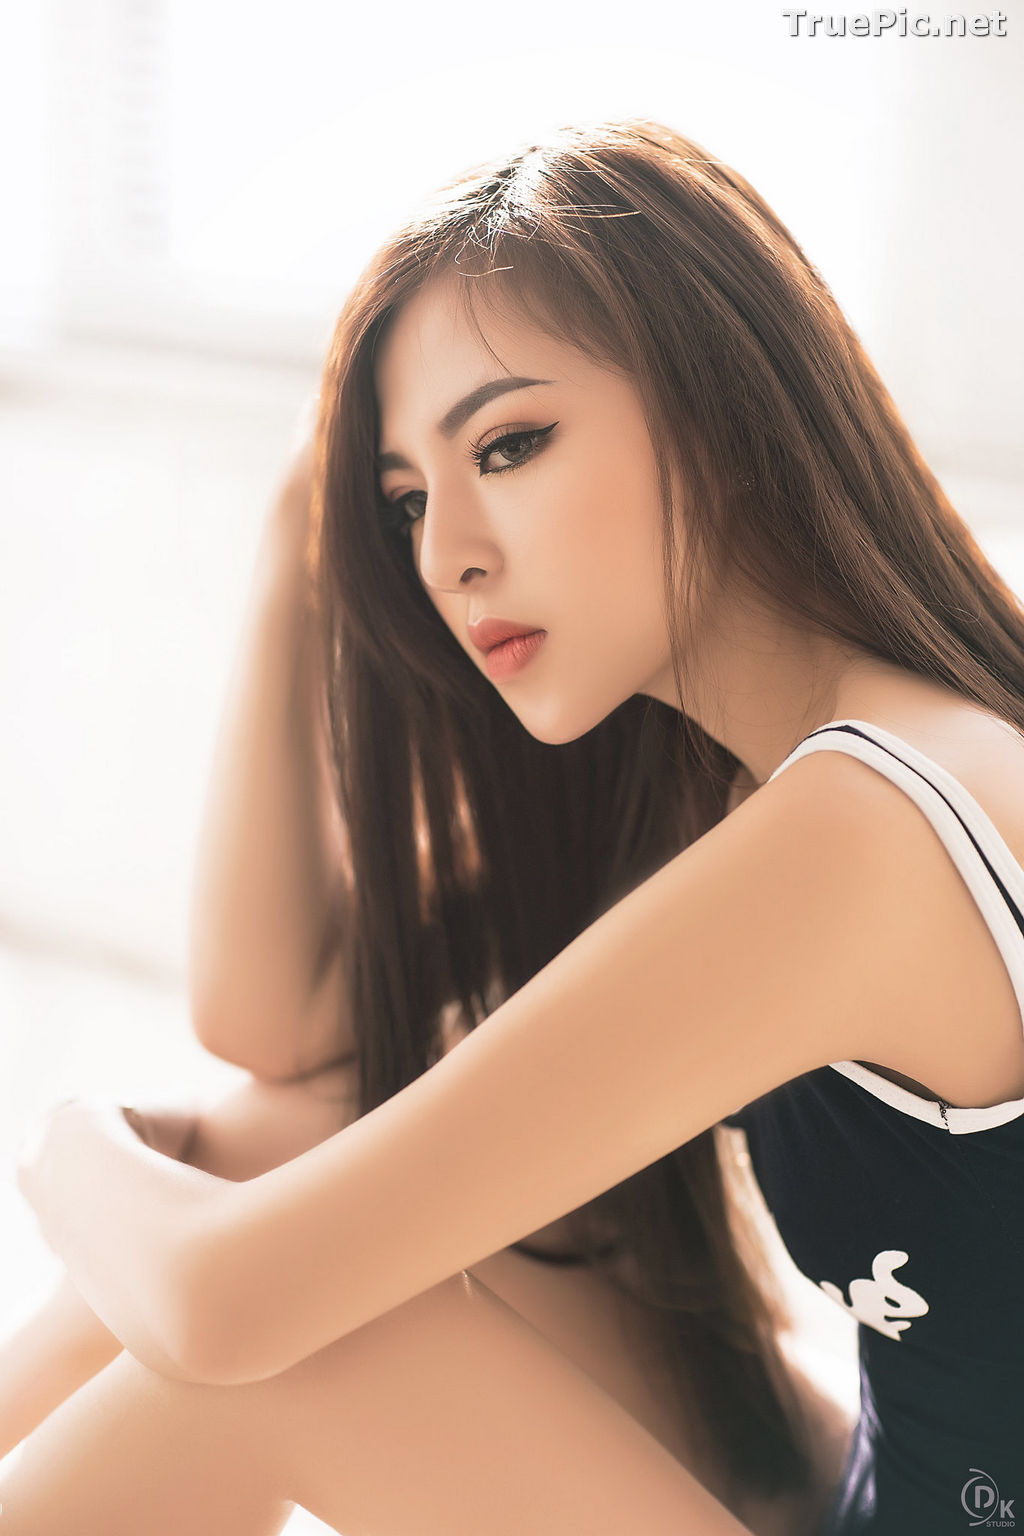 Image The Beauty of Vietnamese Girls – Photo Collection 2020 (#14) - TruePic.net - Picture-4